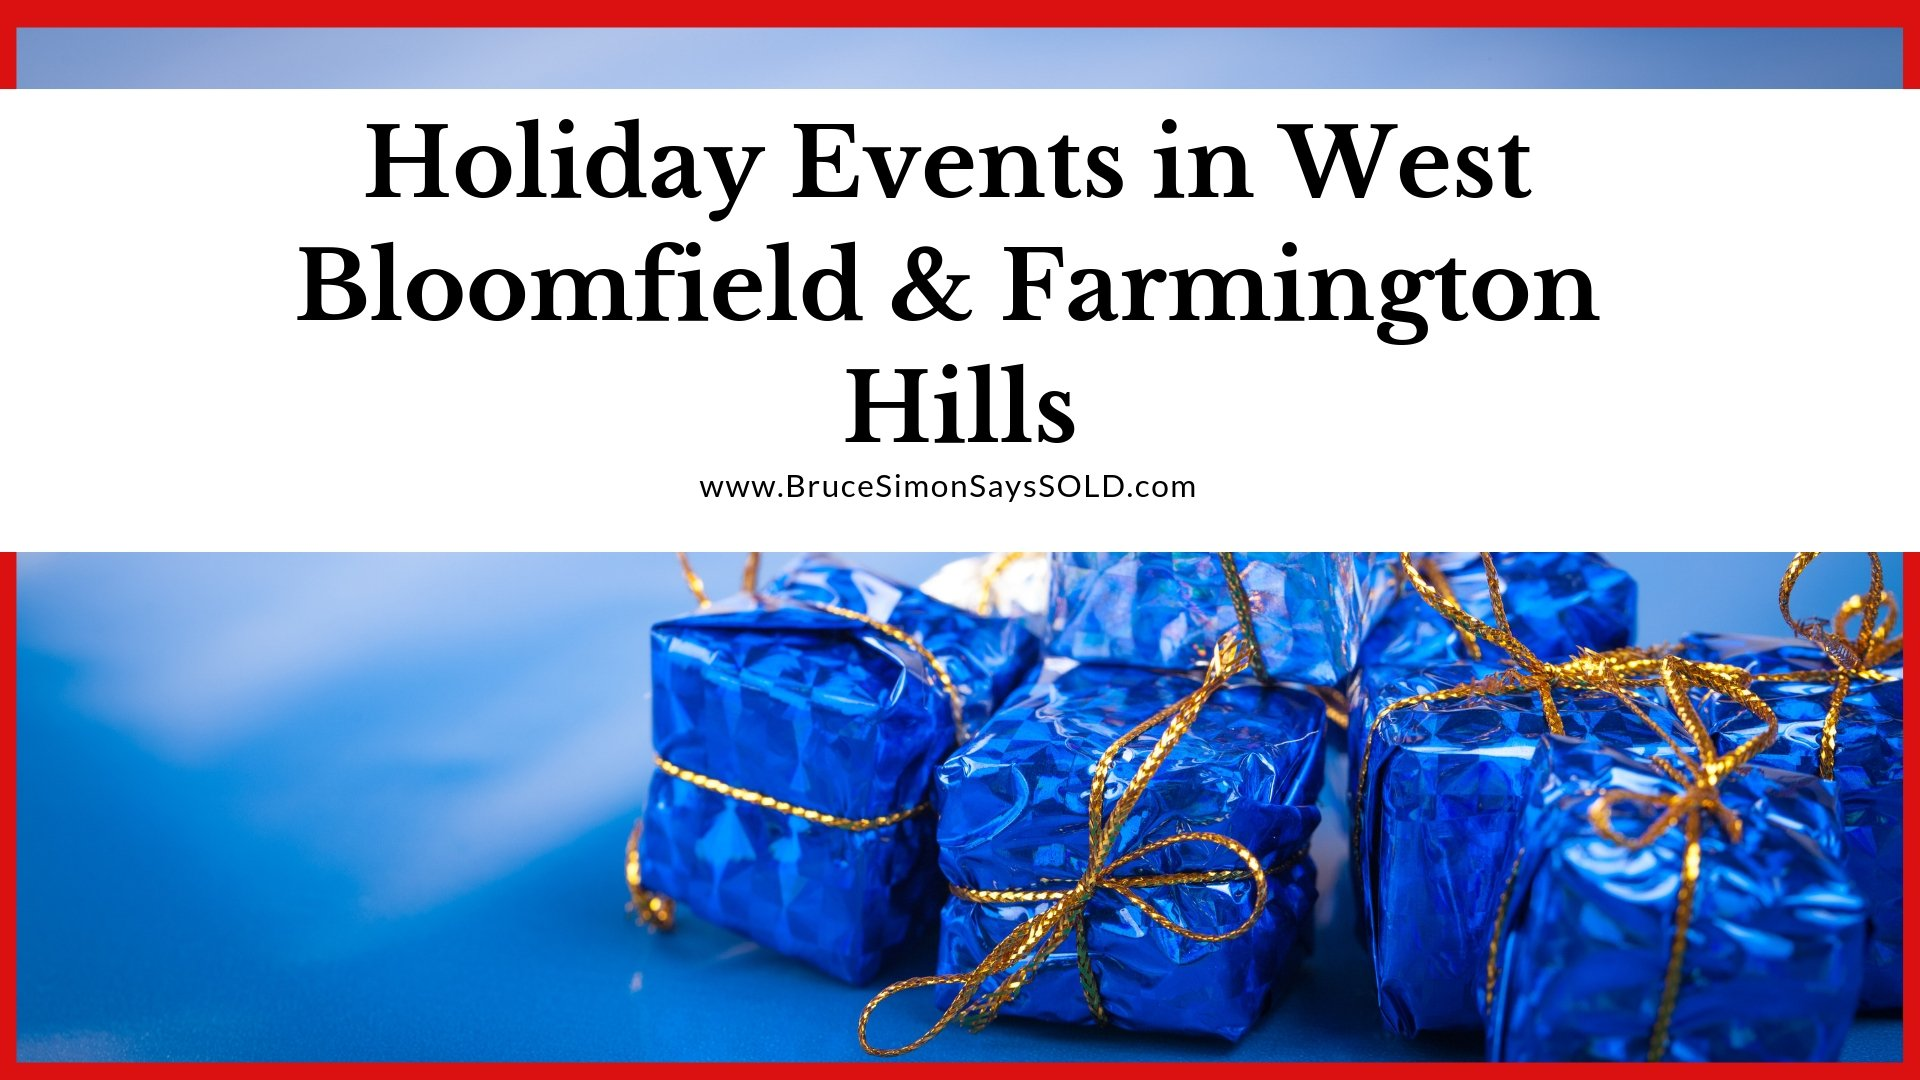 Holiday Events in West Bloomfield & Farmington Hills 2018